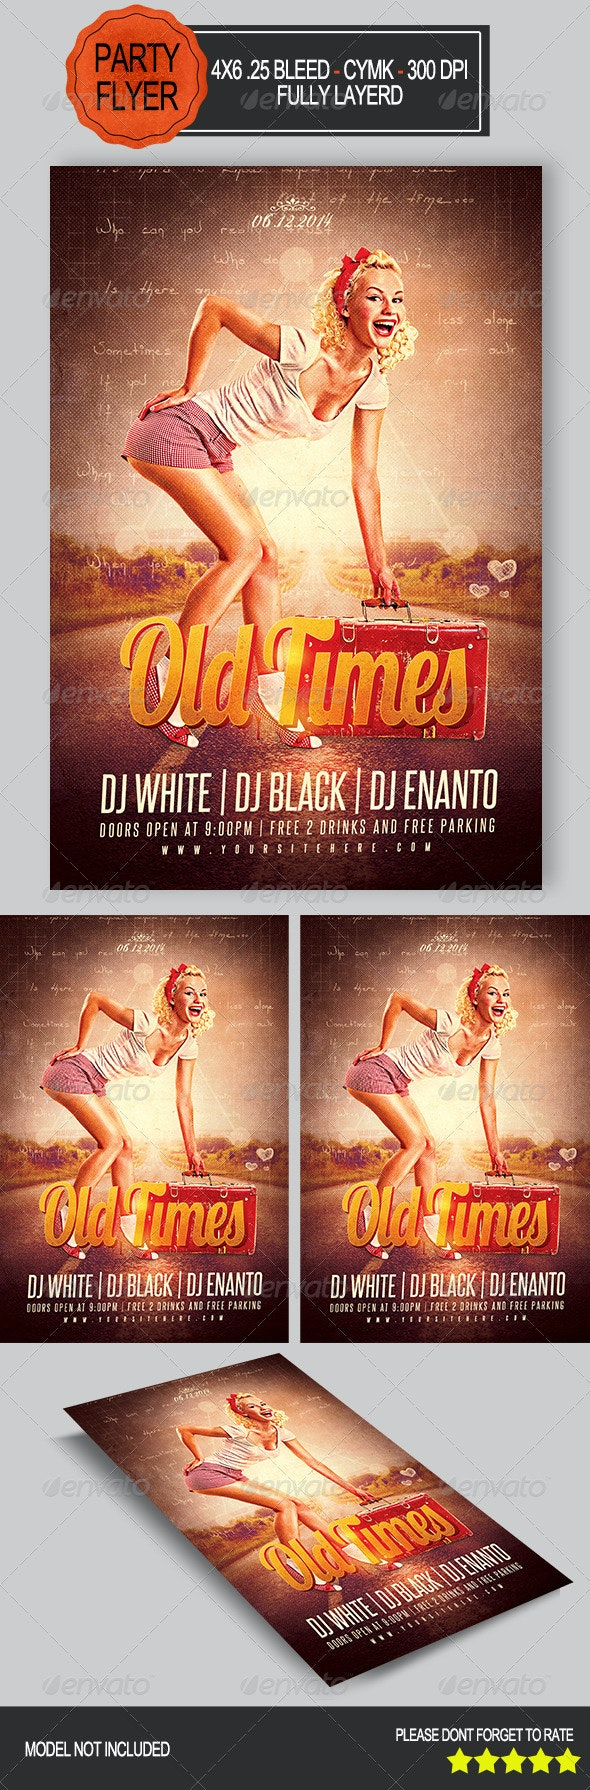 Old Times Flyer   - Clubs & Parties Events